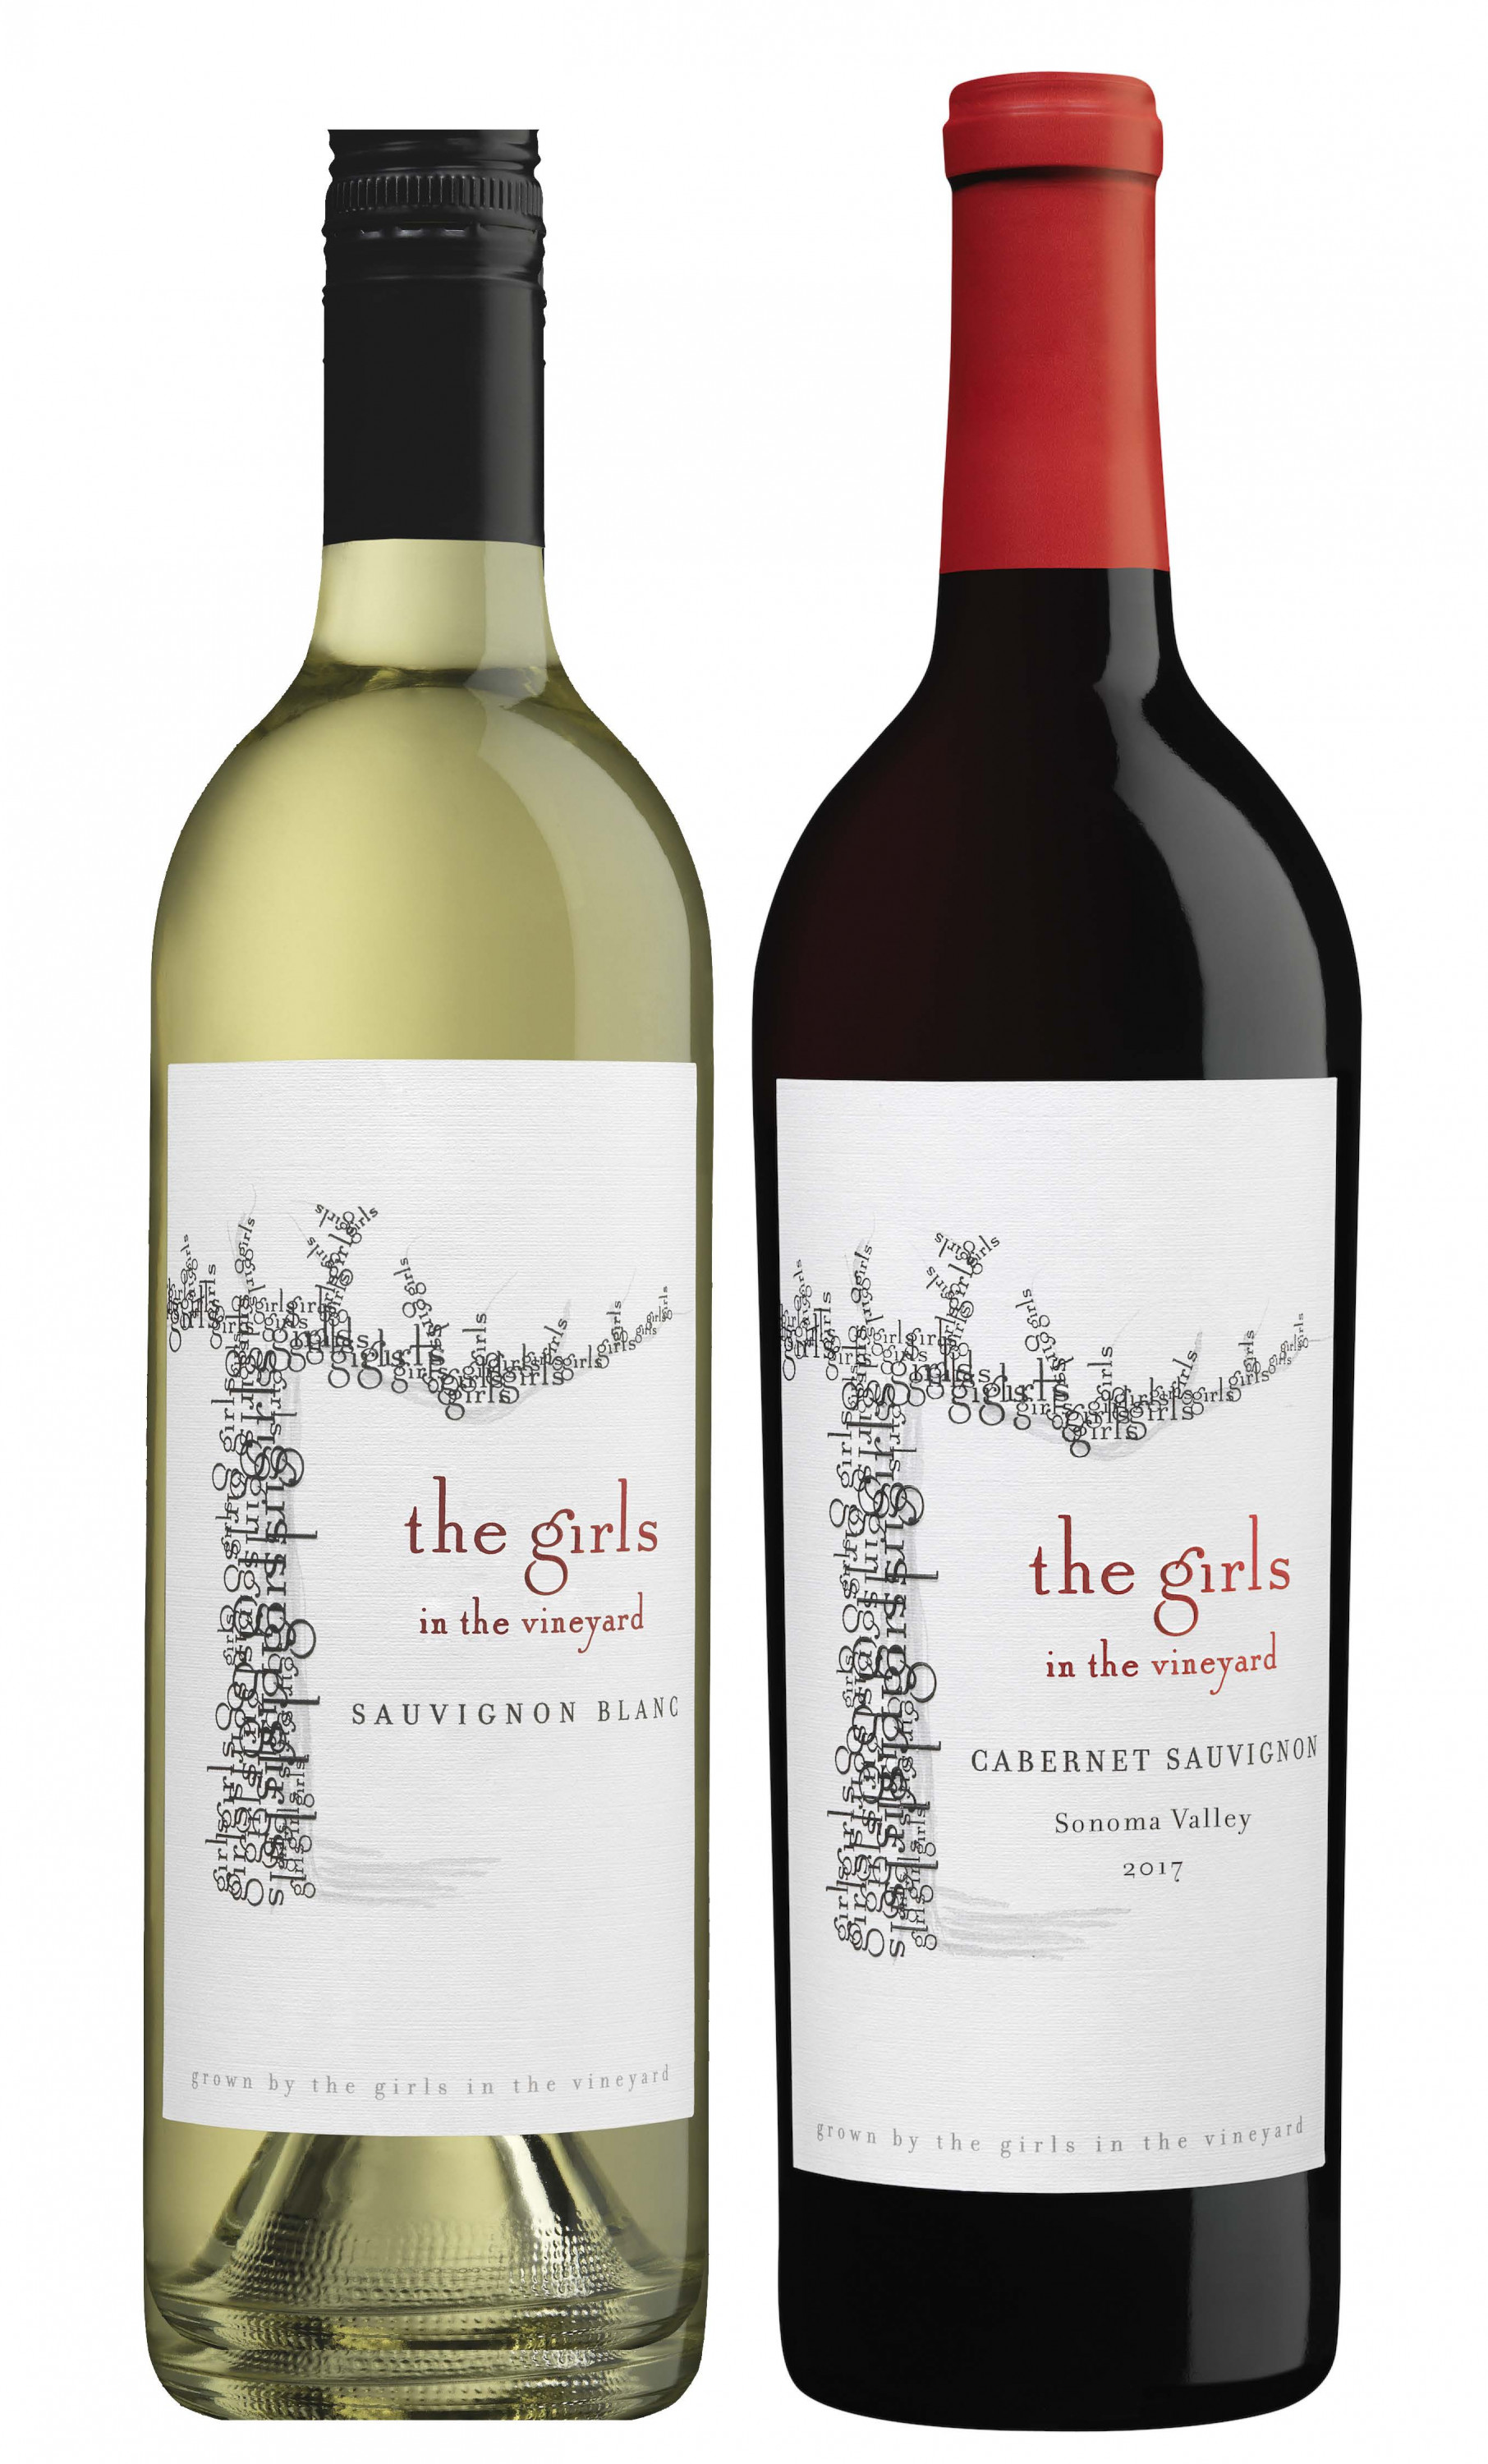 Making a Half Case - the girls Cabernet Sauvignon & Sauvignon Blanc 6 x 750ml the girls in the vineyard - Art+Farm Wine